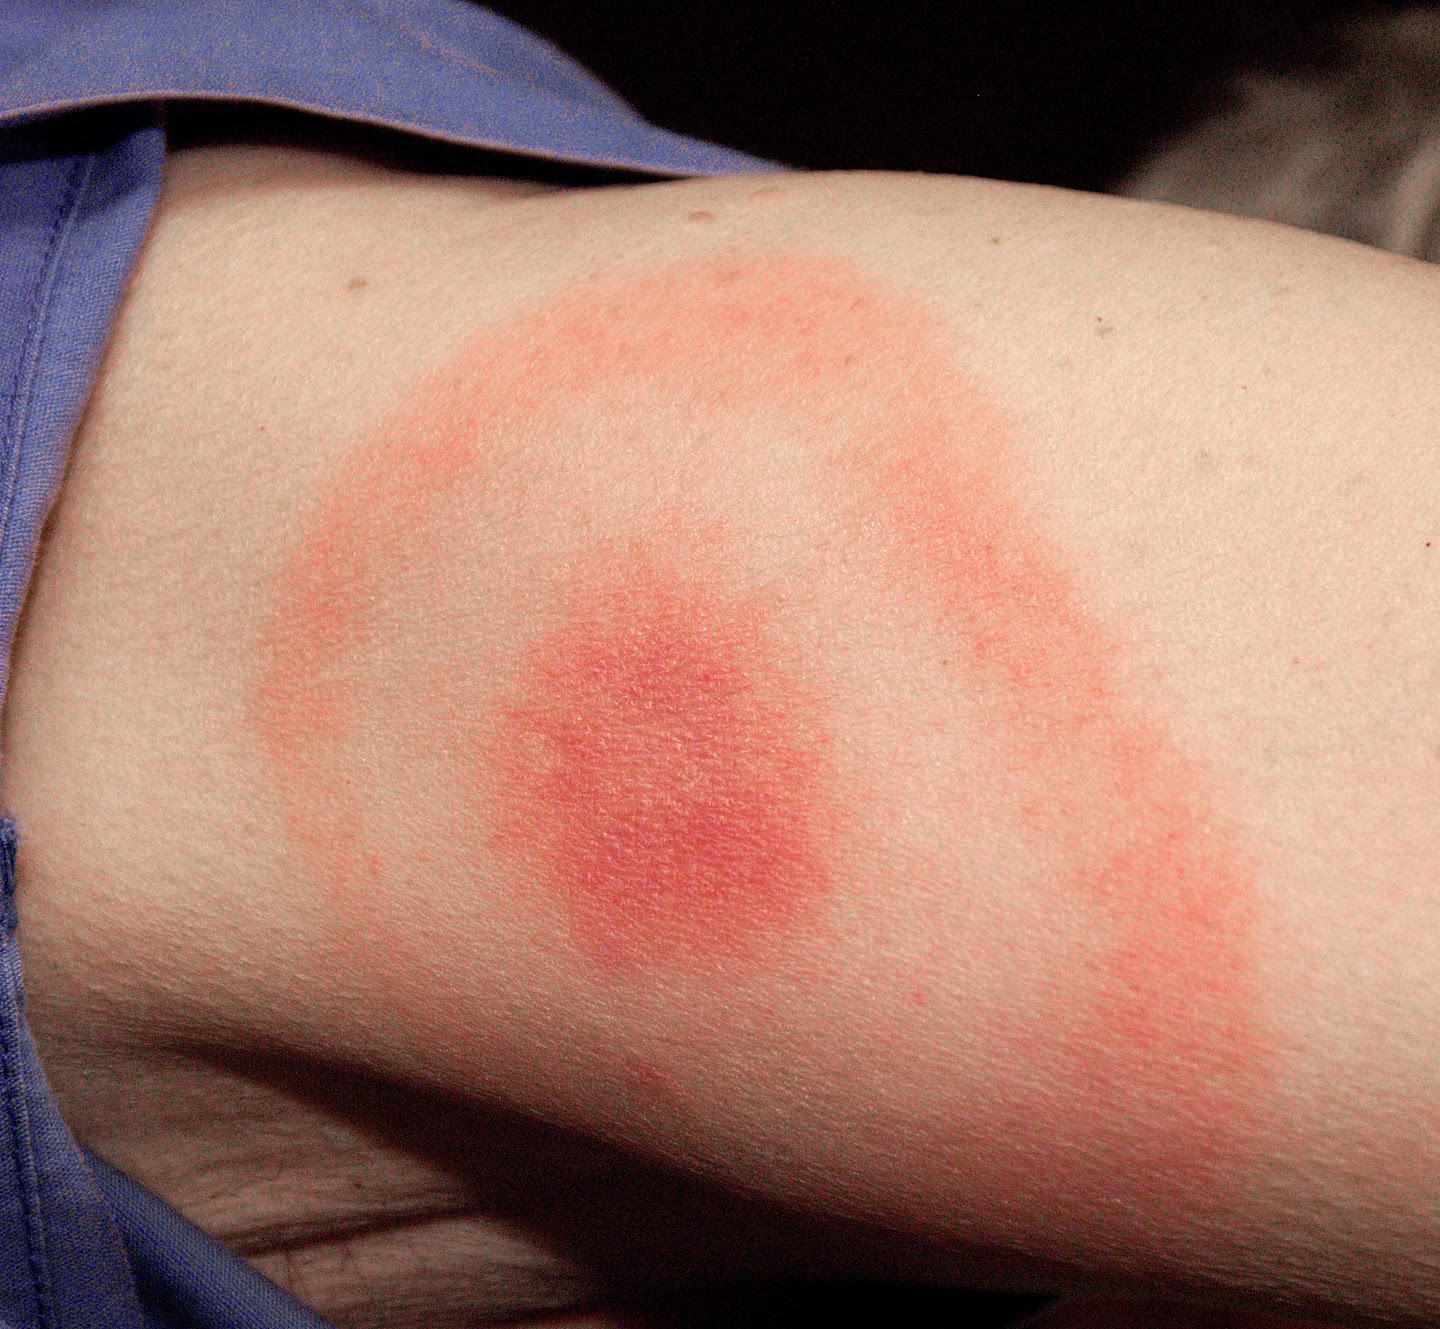 Lyme Disease bulls eye rash